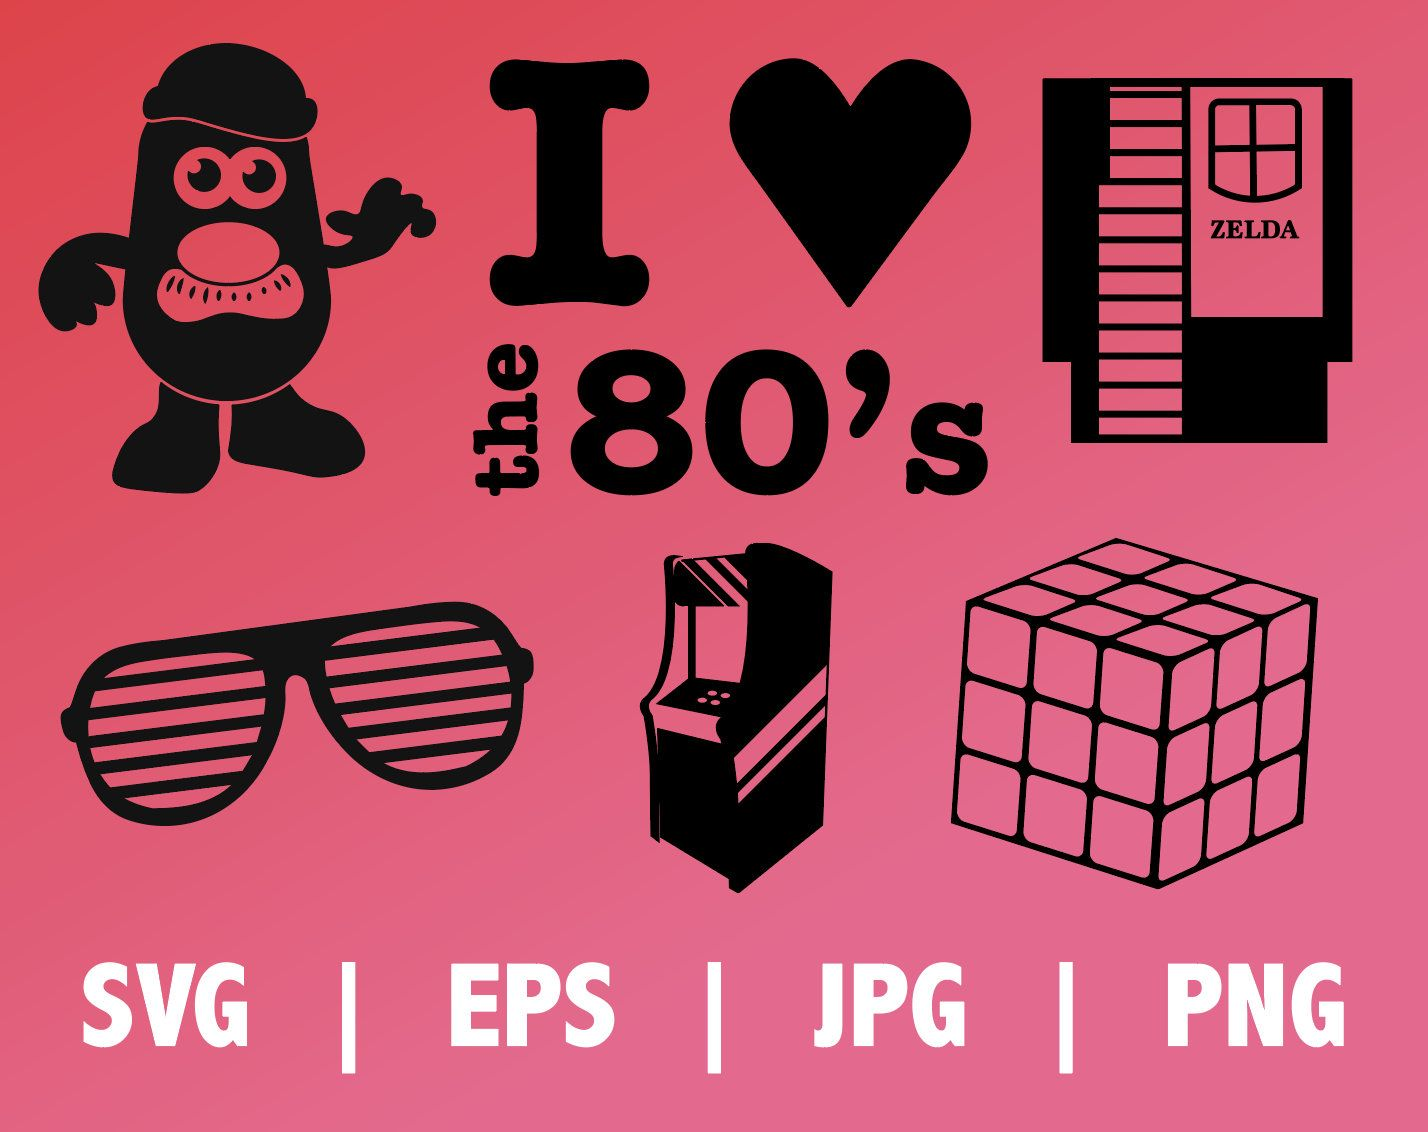 I LOVE THE 80's Digital Download retro 80s SVG icons